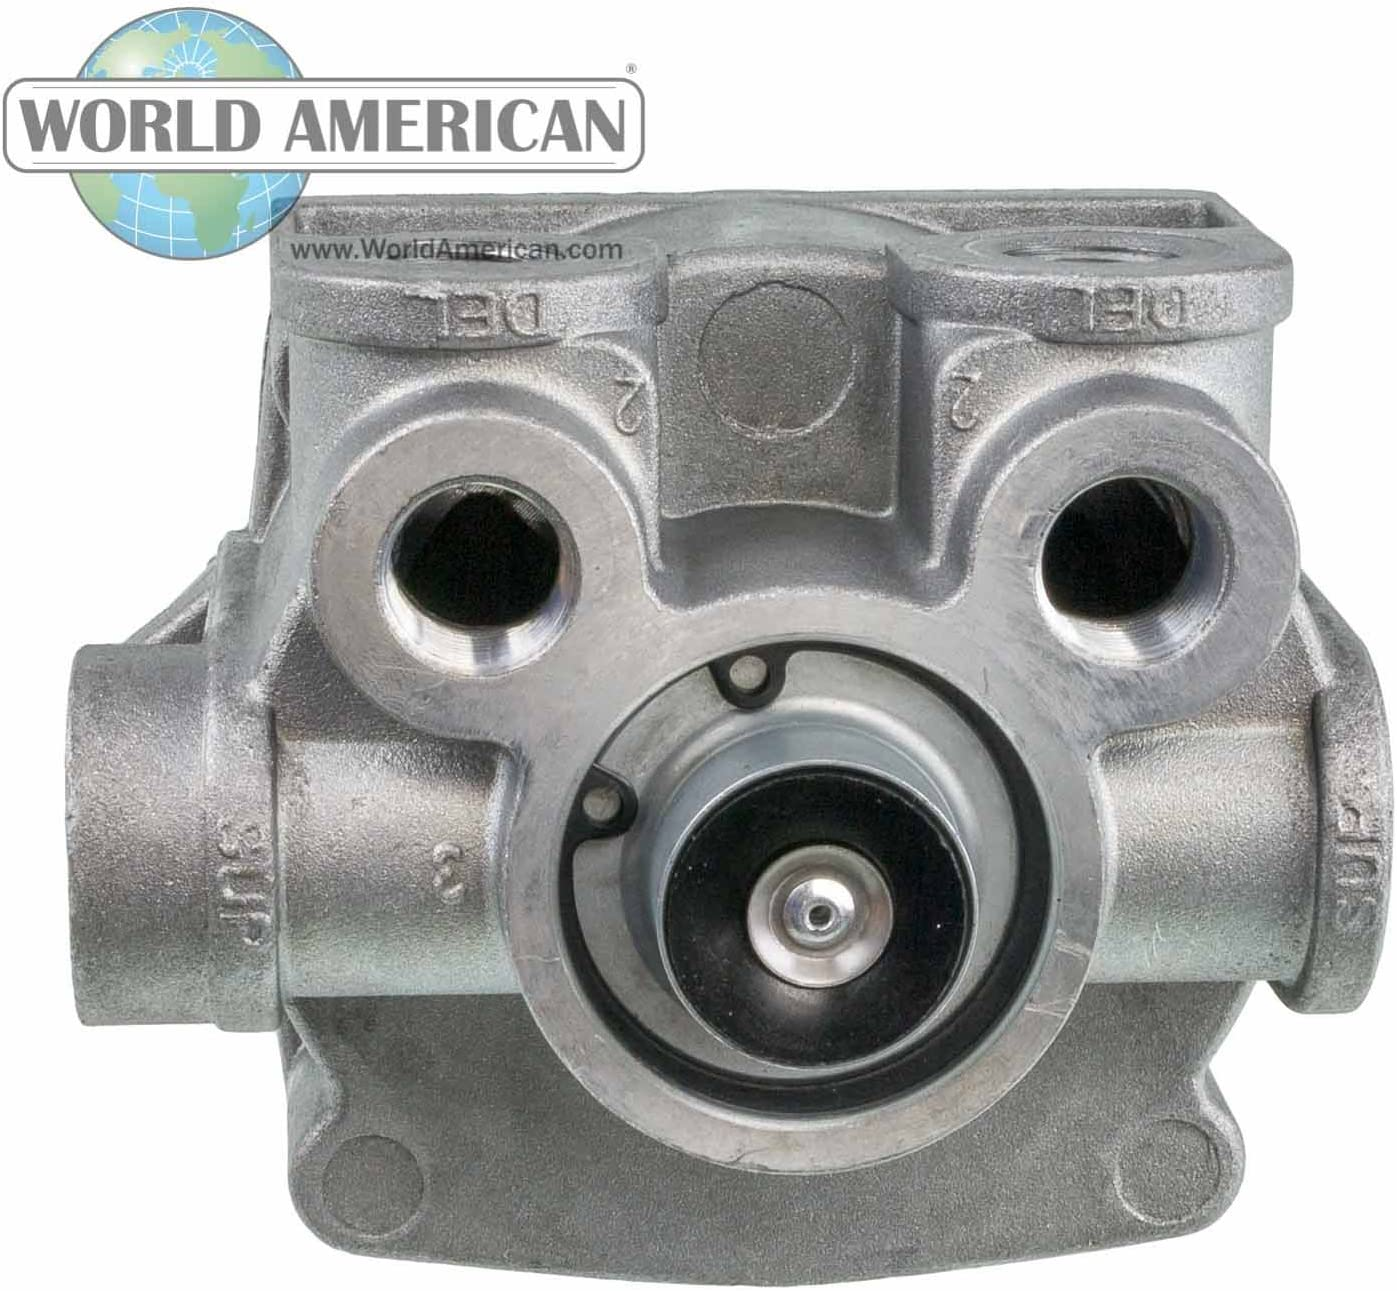 World American WA289714 Relay Valve